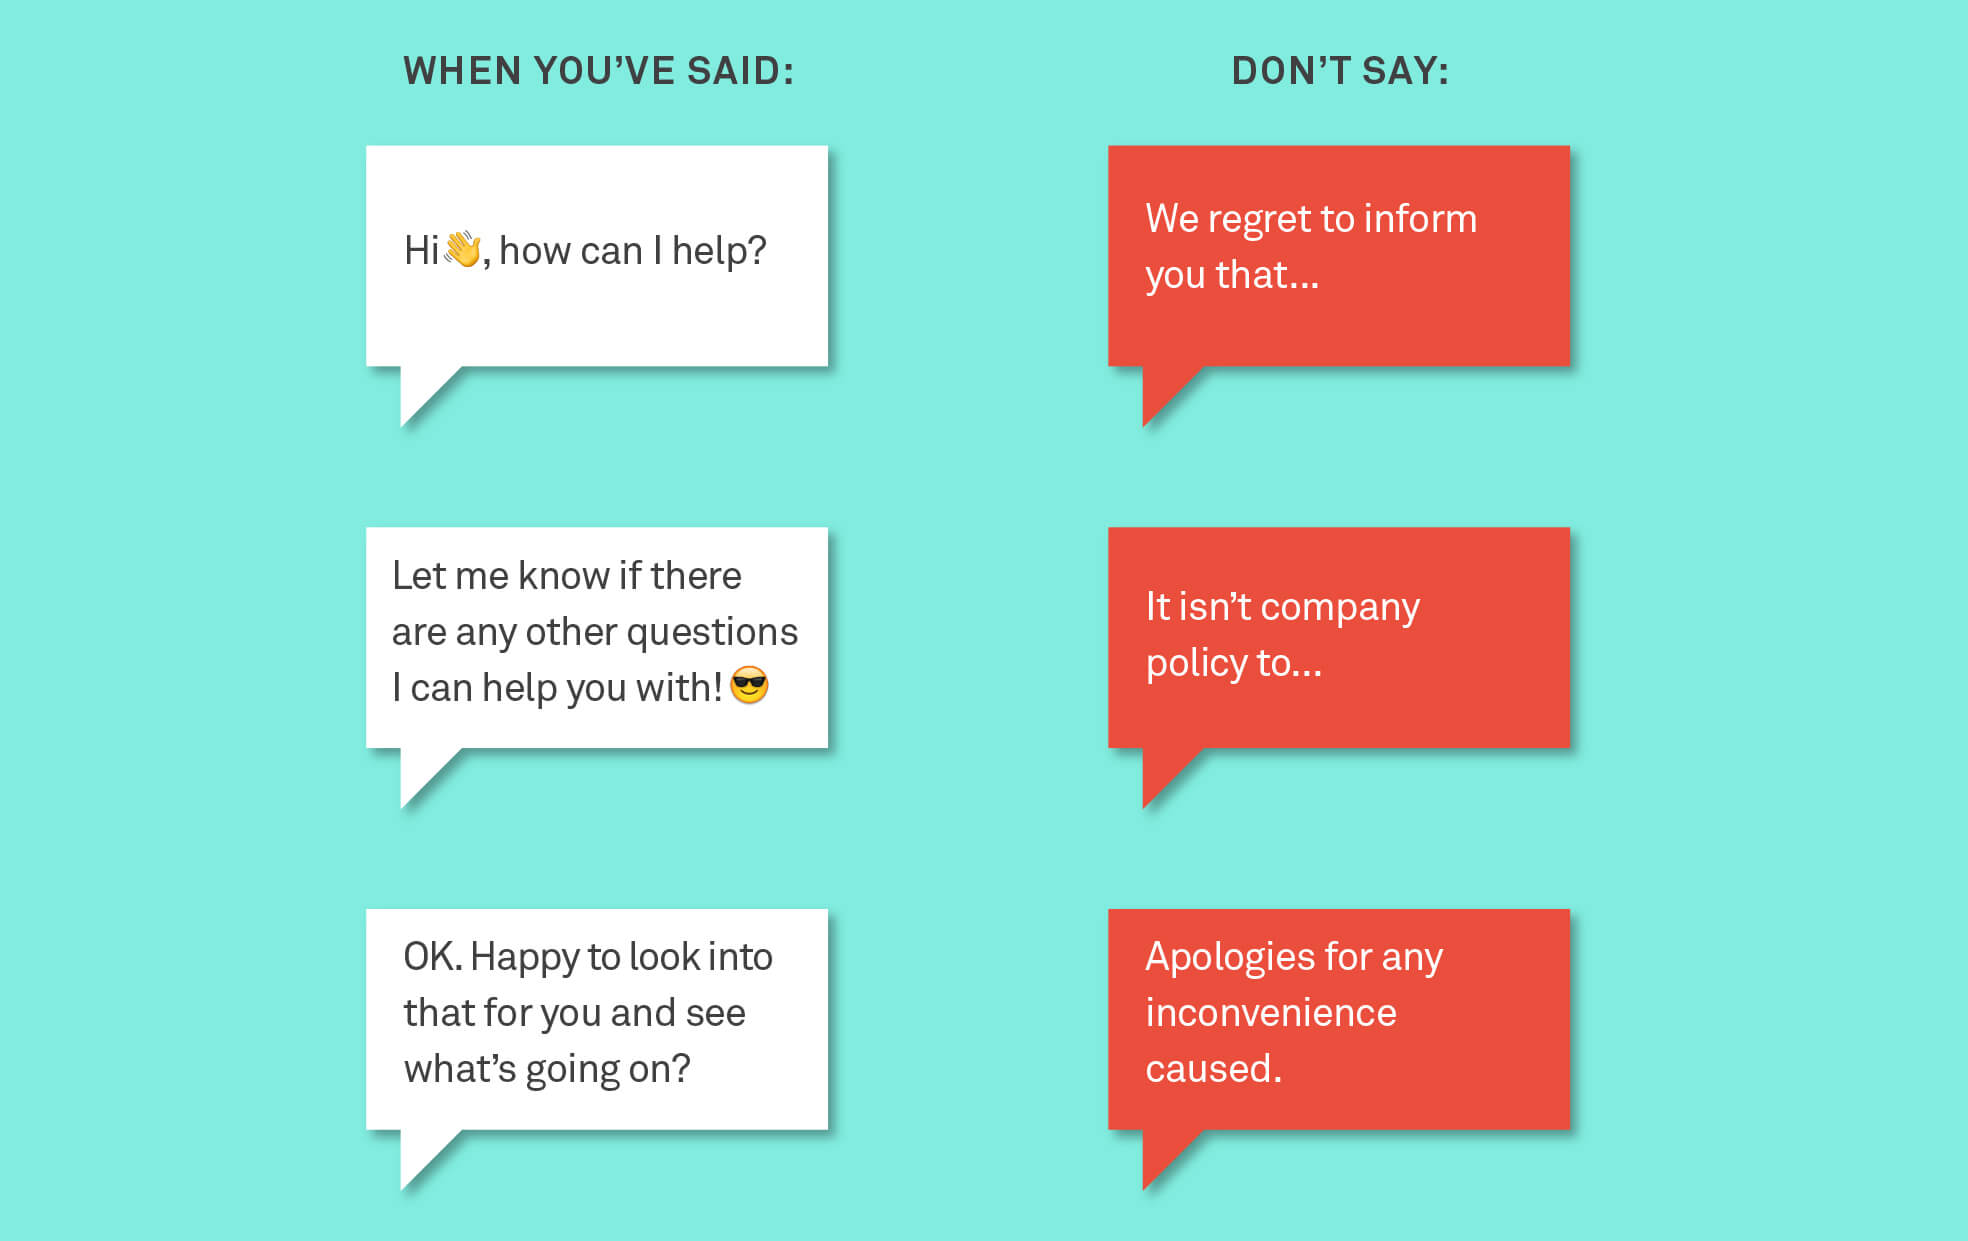 Examples of how your tone can change when delivering bad news